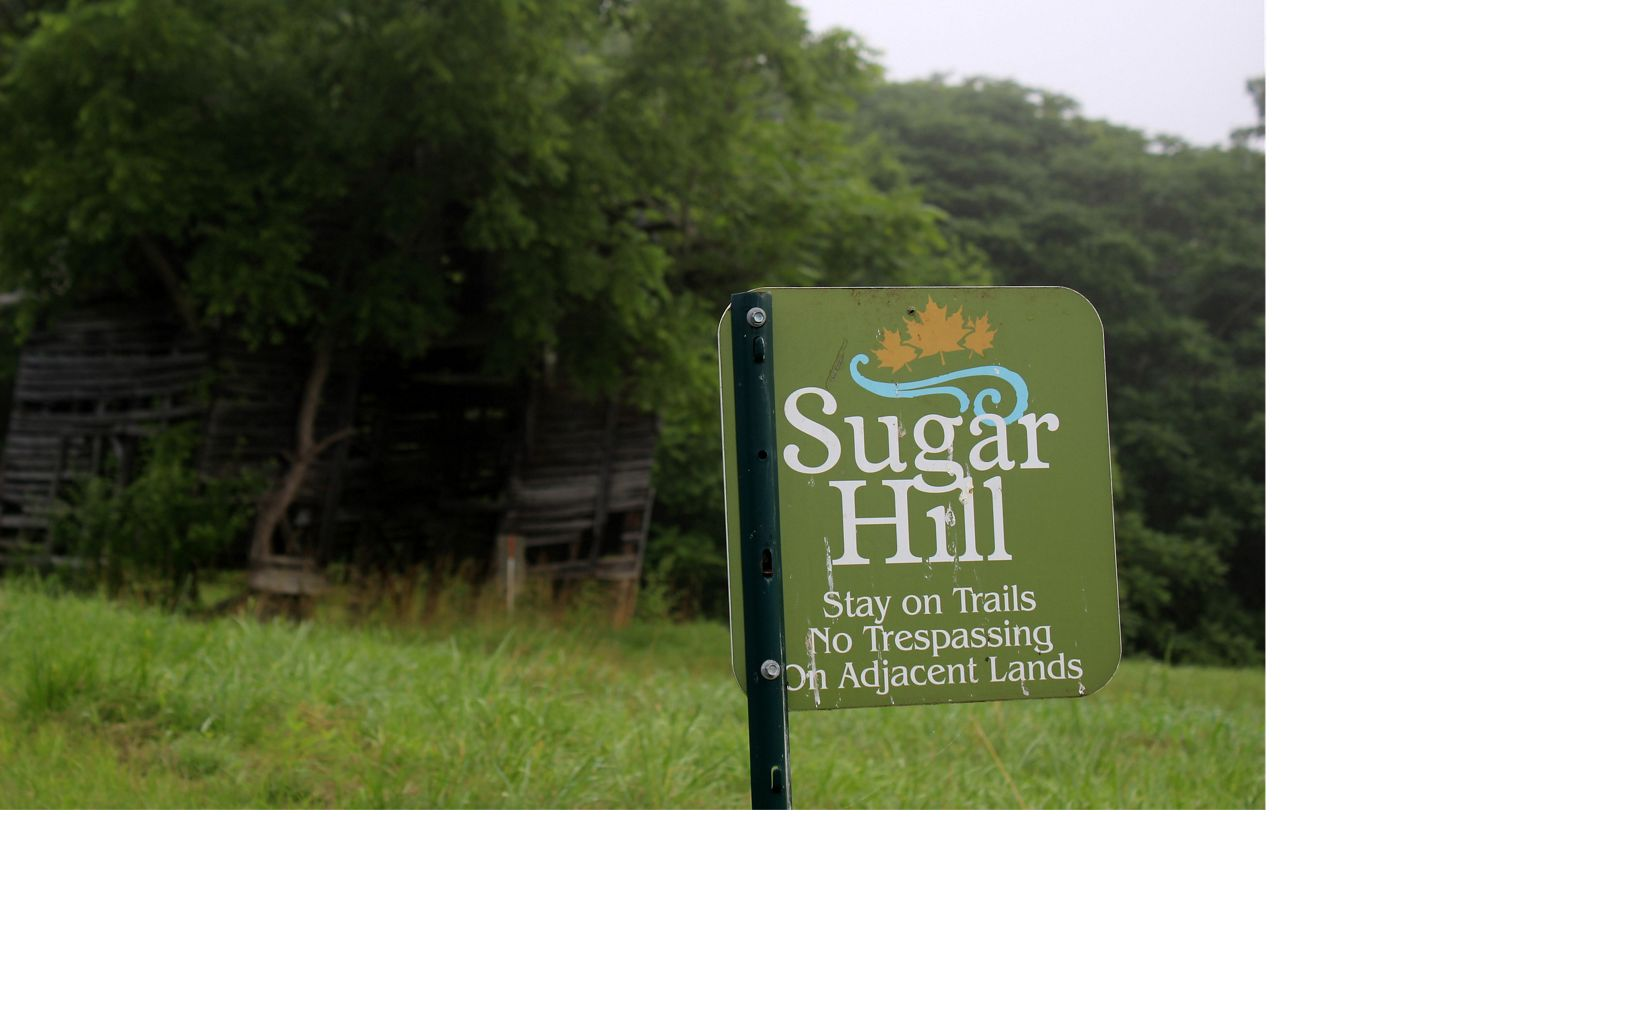 Located in Virginia's Clinch Valley near St. Paul, Sugar Hill is slated to become part of the commonwealth's newest state park.